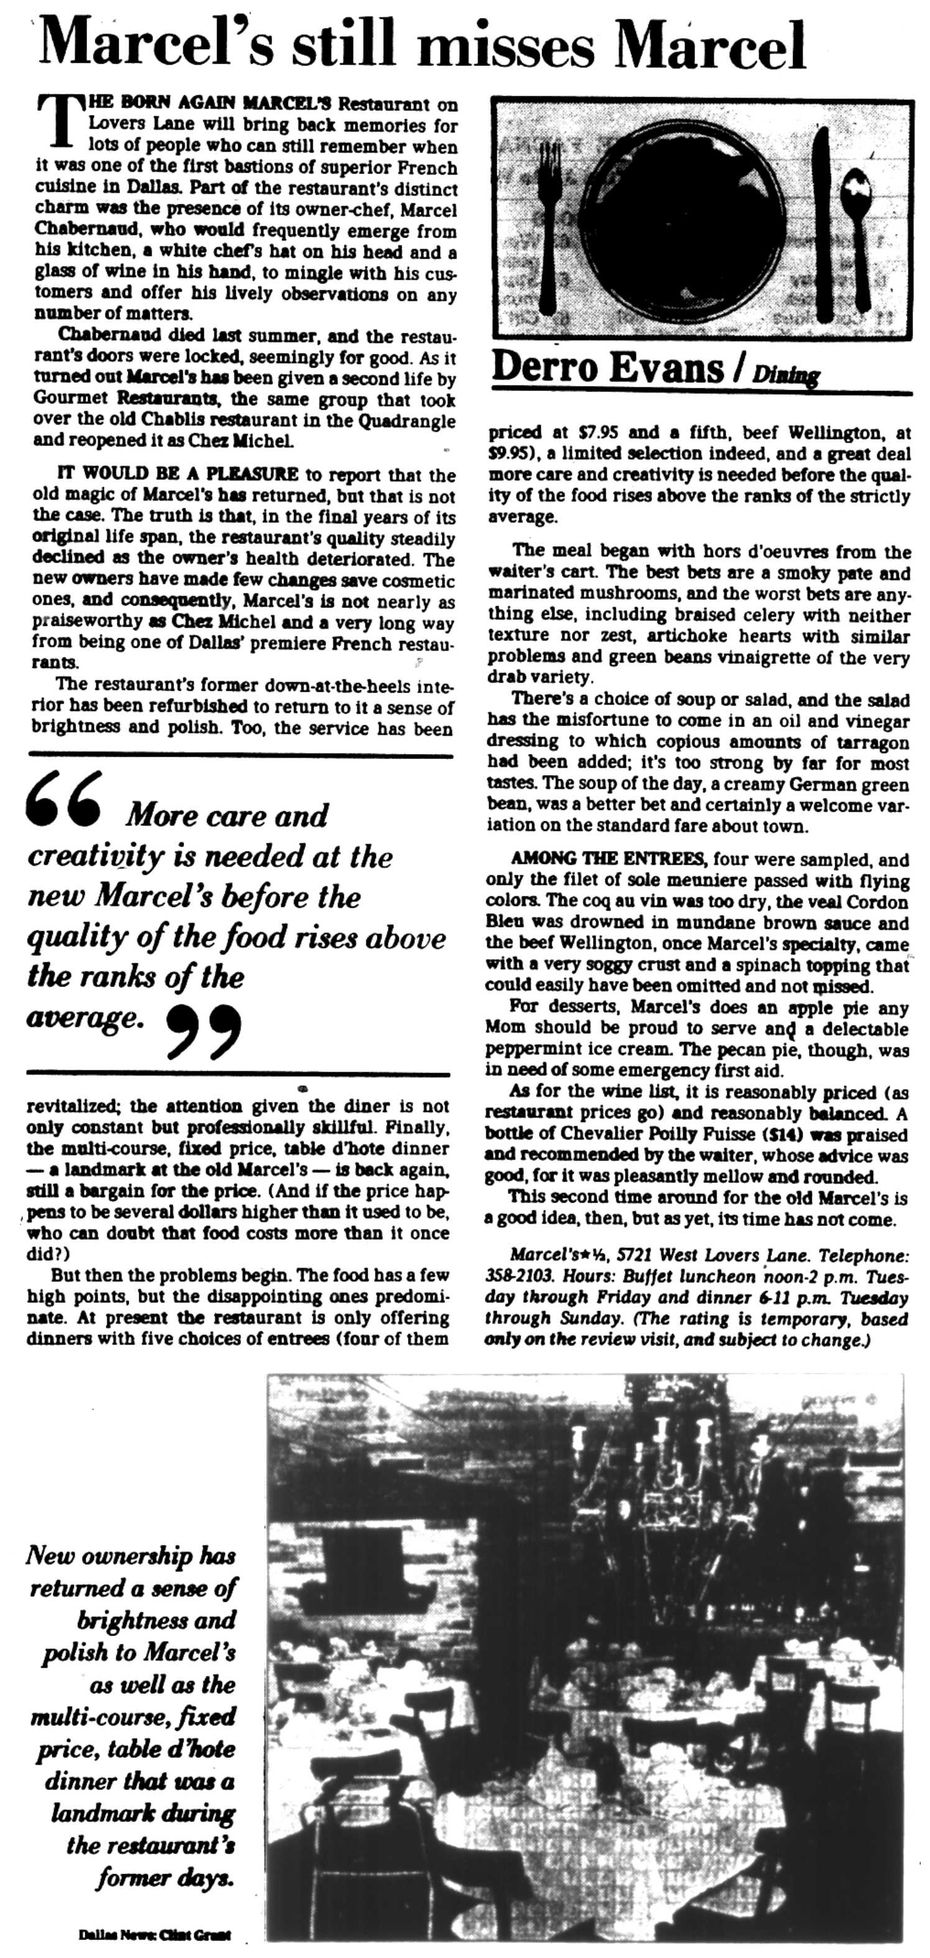 The Dallas Morning News' first restaurant review was Marcel's on Lovers Lane, which published October 20, 1978.